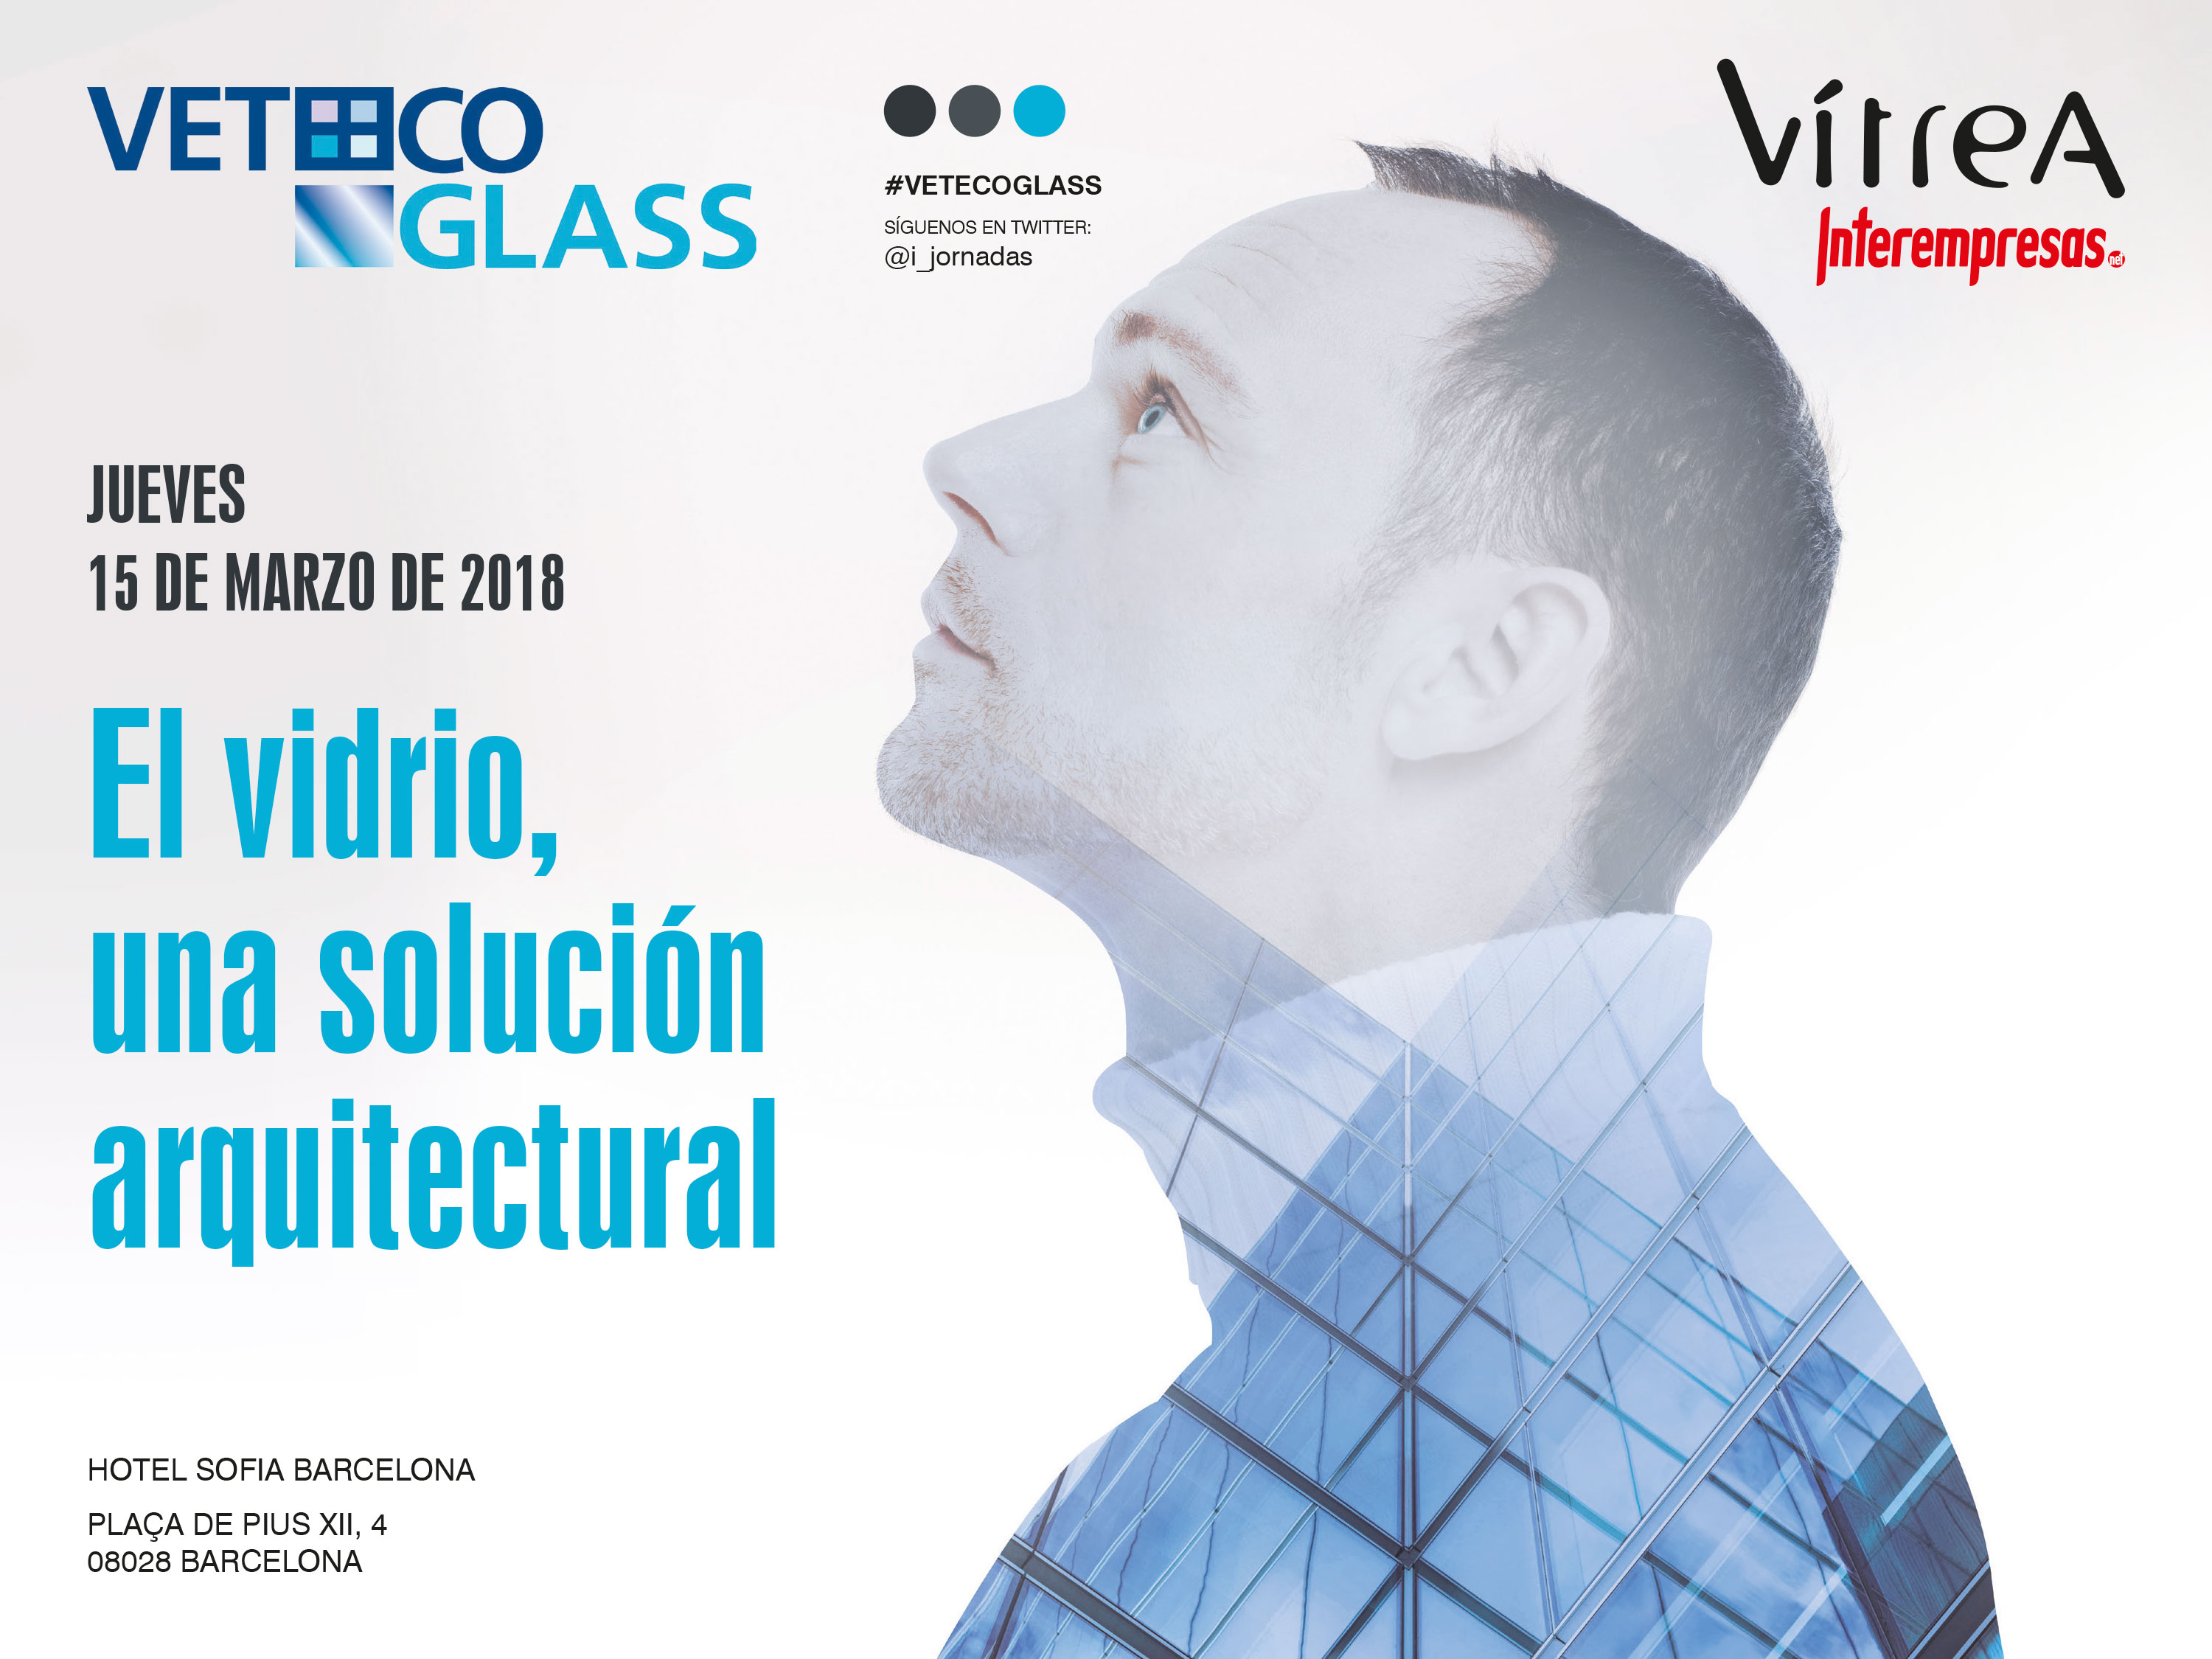 cartel de Jornada Veteco Glass Barcelona